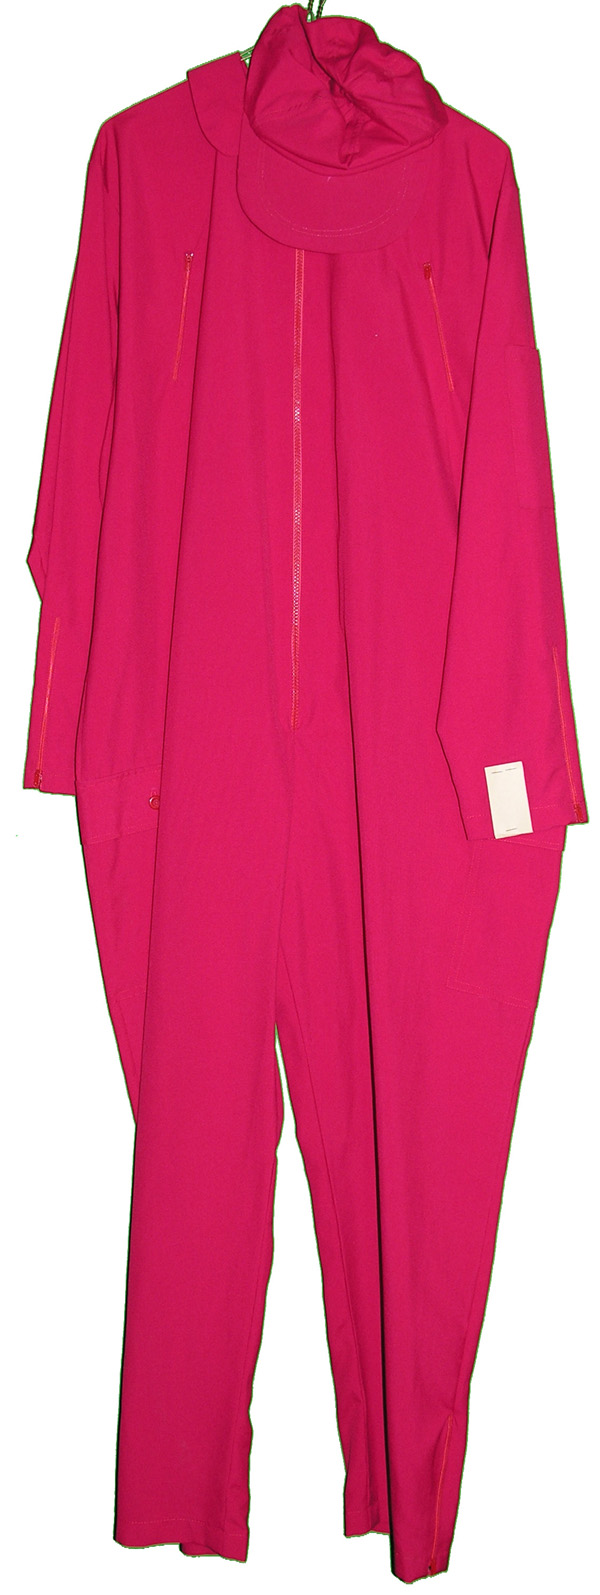 Air Force Red Party Suit and Hat